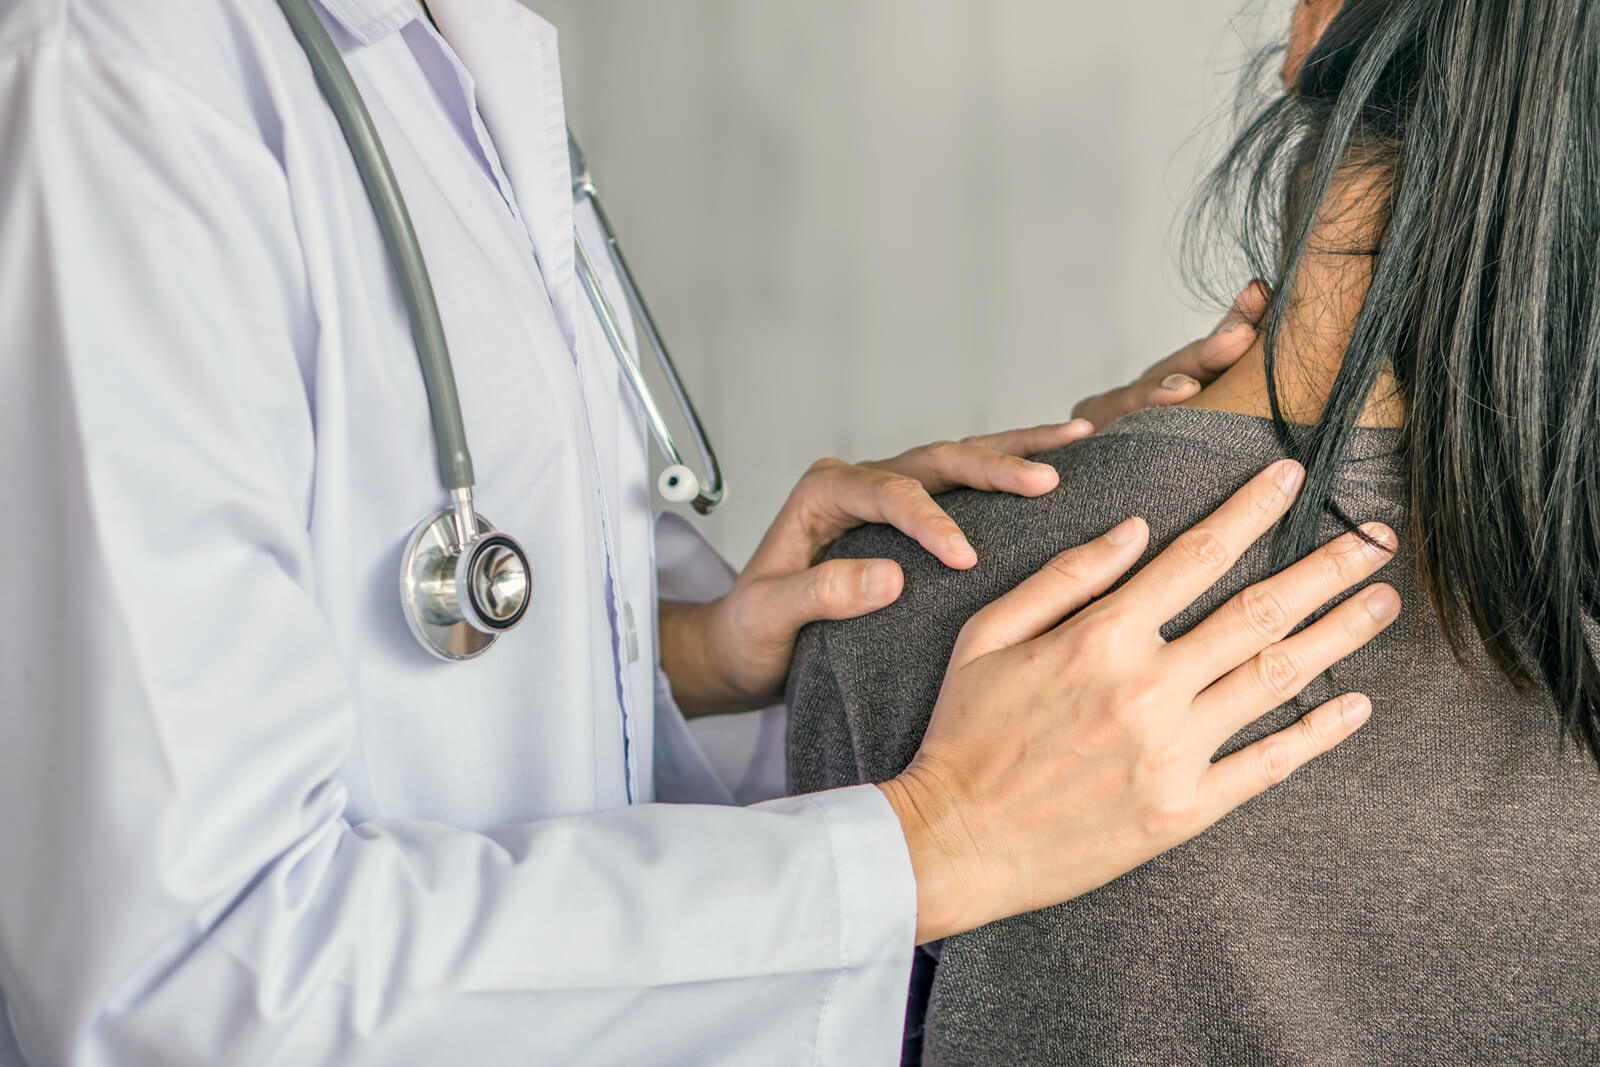 Doctor consults patient about total joint replacement as an option forgetting relief for her chronic shoulder pain